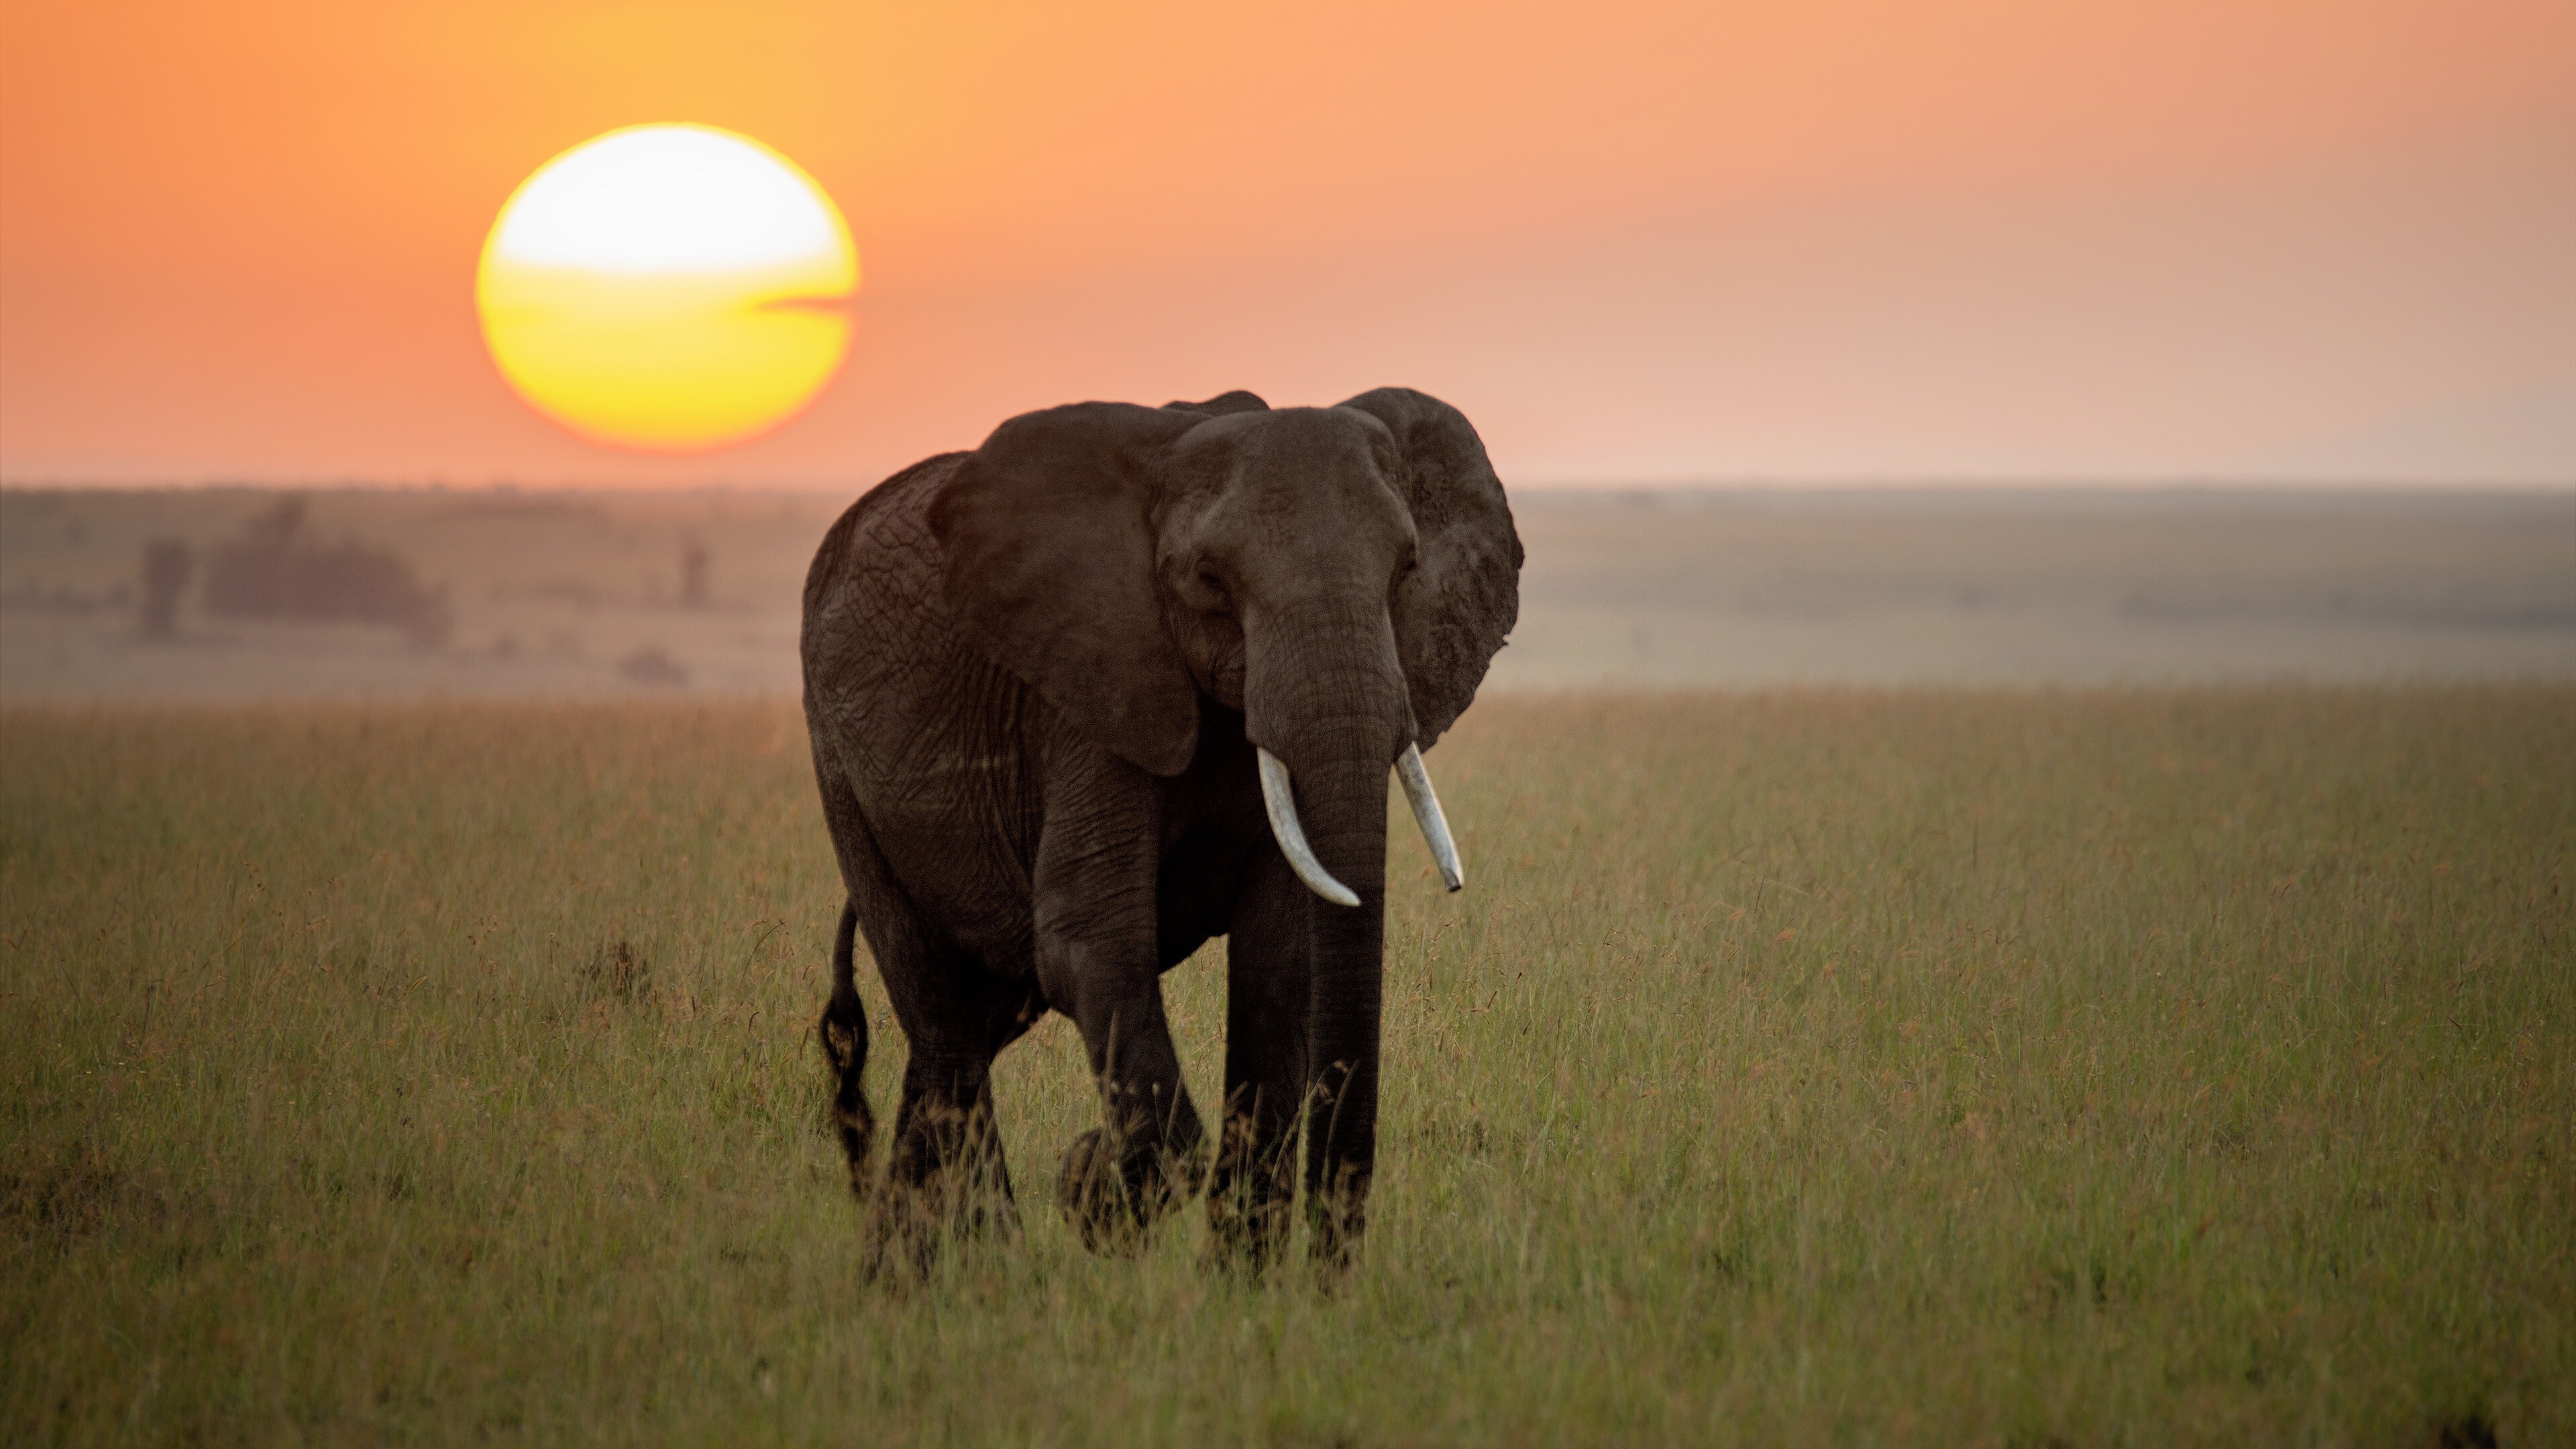 Elephant Walking At Sunset Time 4K Photo | HD Wallpapers